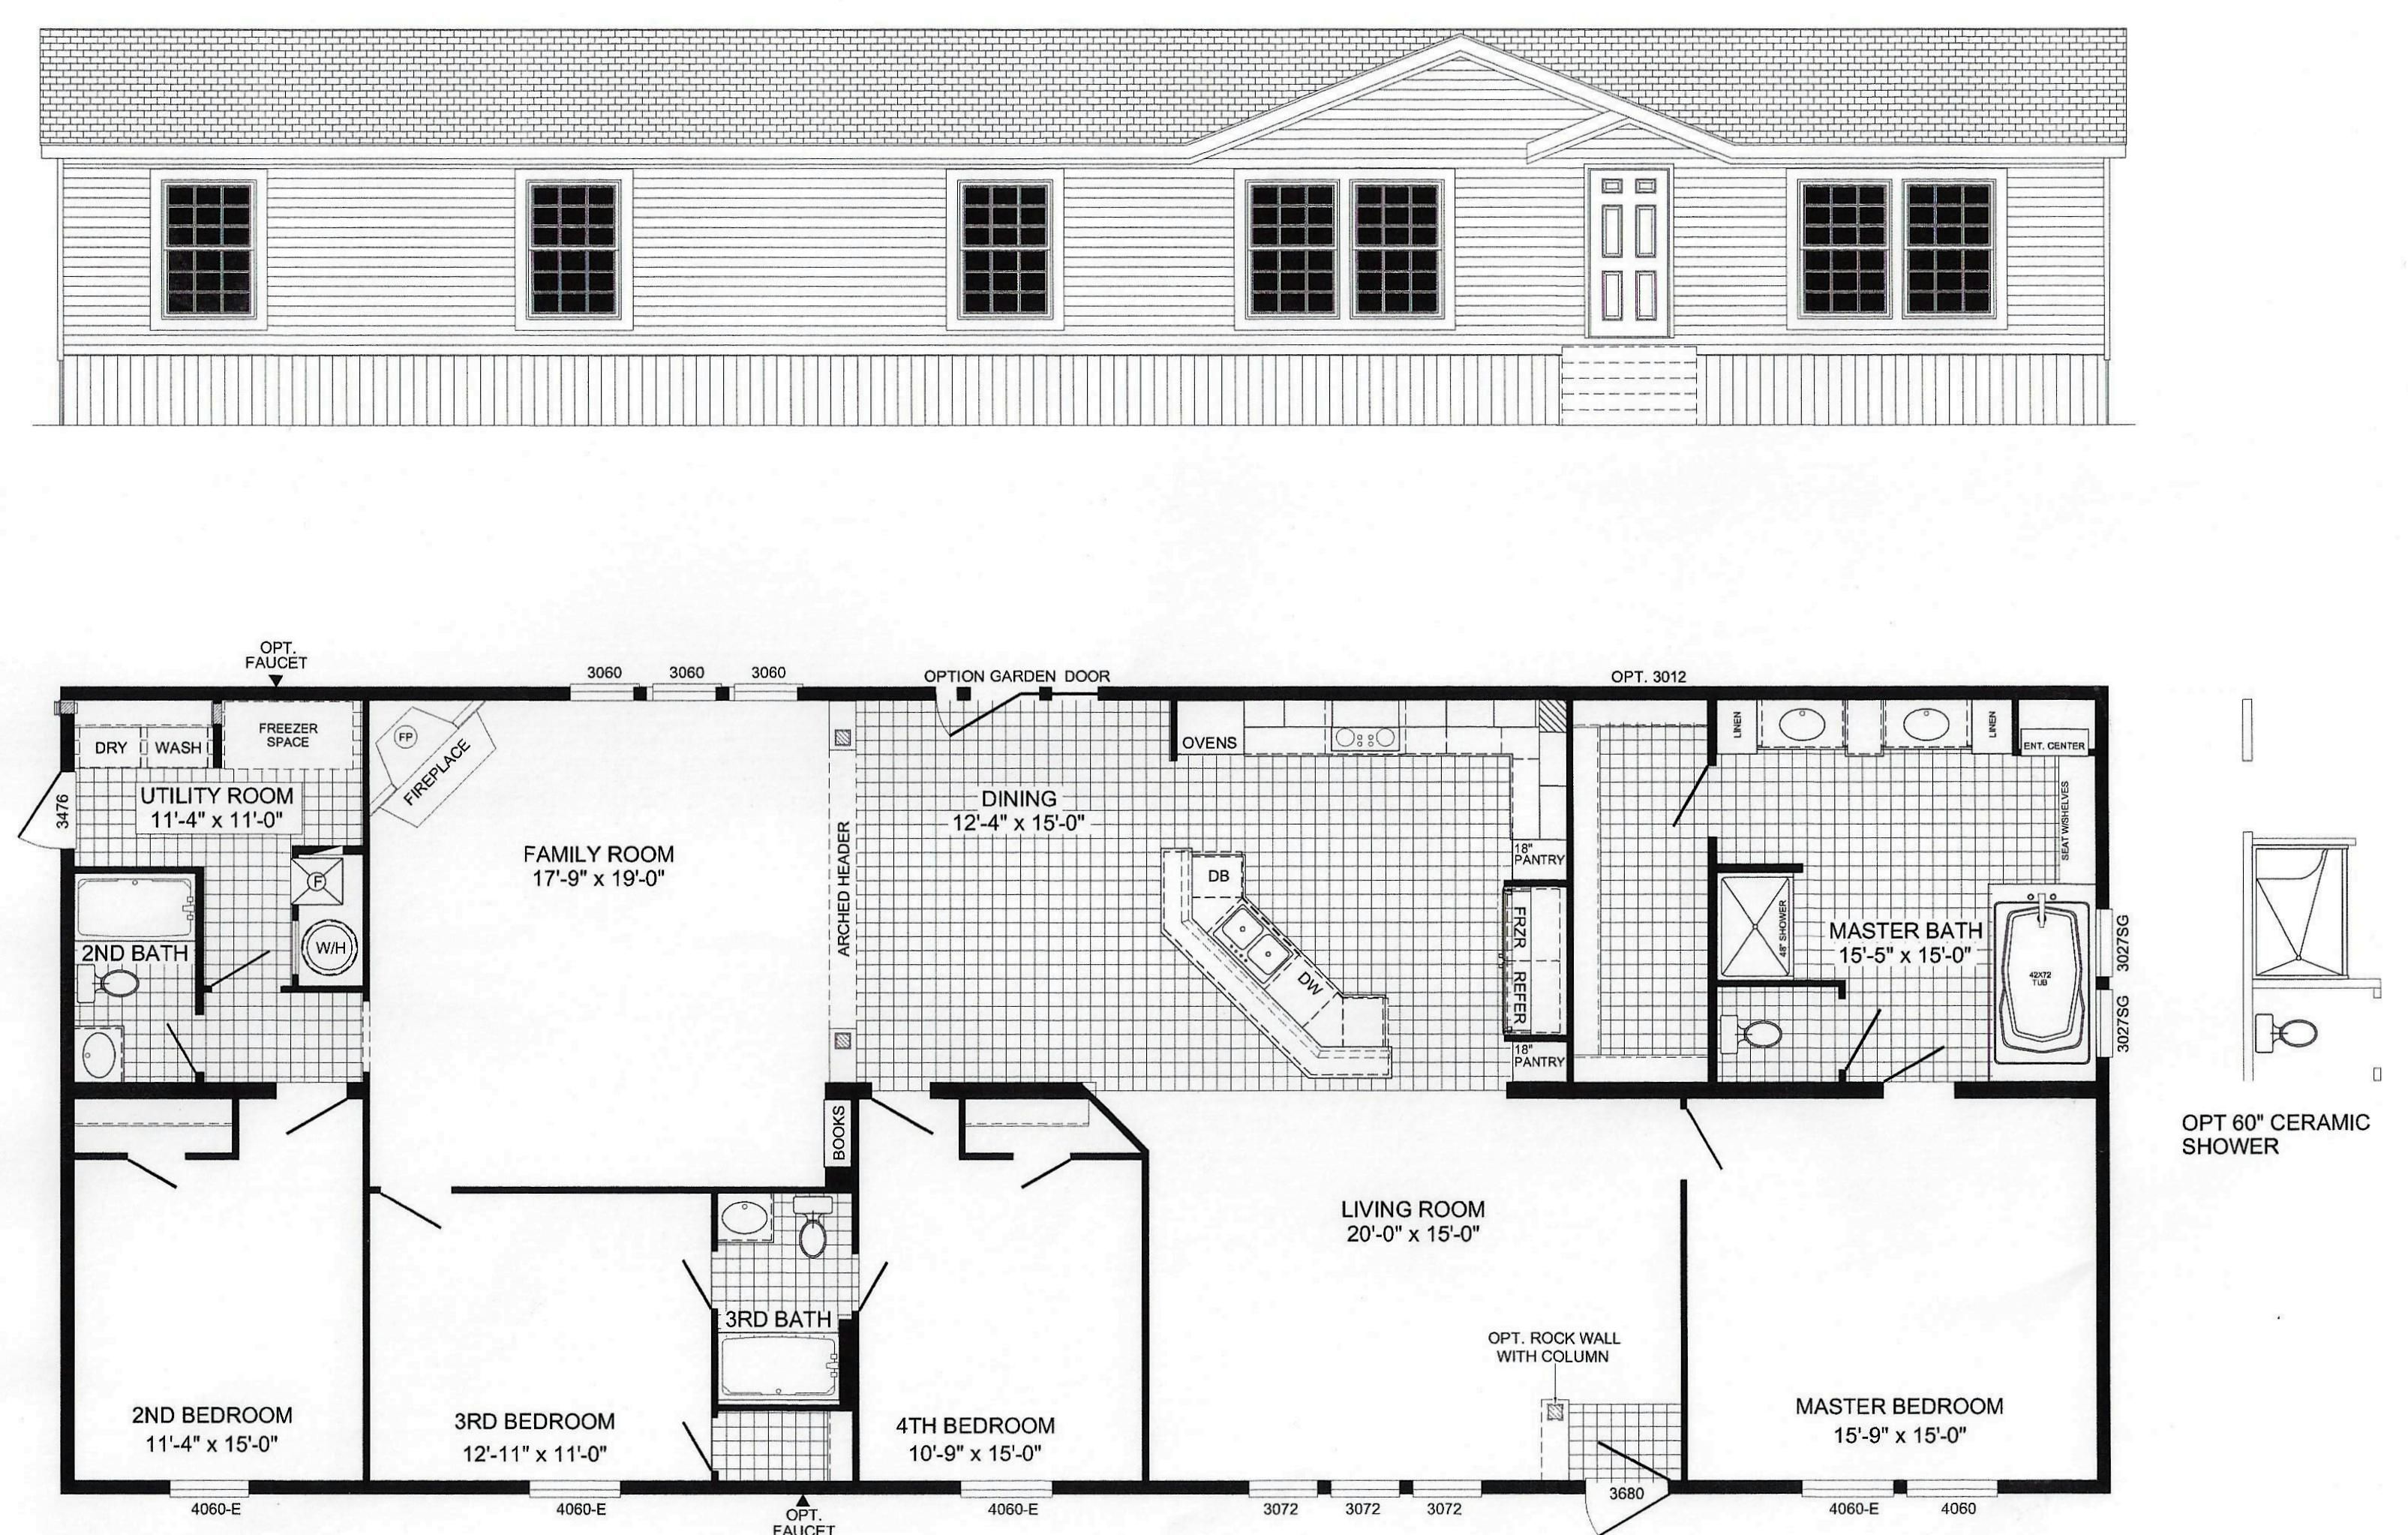 4 Bedroom Floor Plan B 6010 Floor Plans Bedroom Floor Plans Modular Home Floor Plans